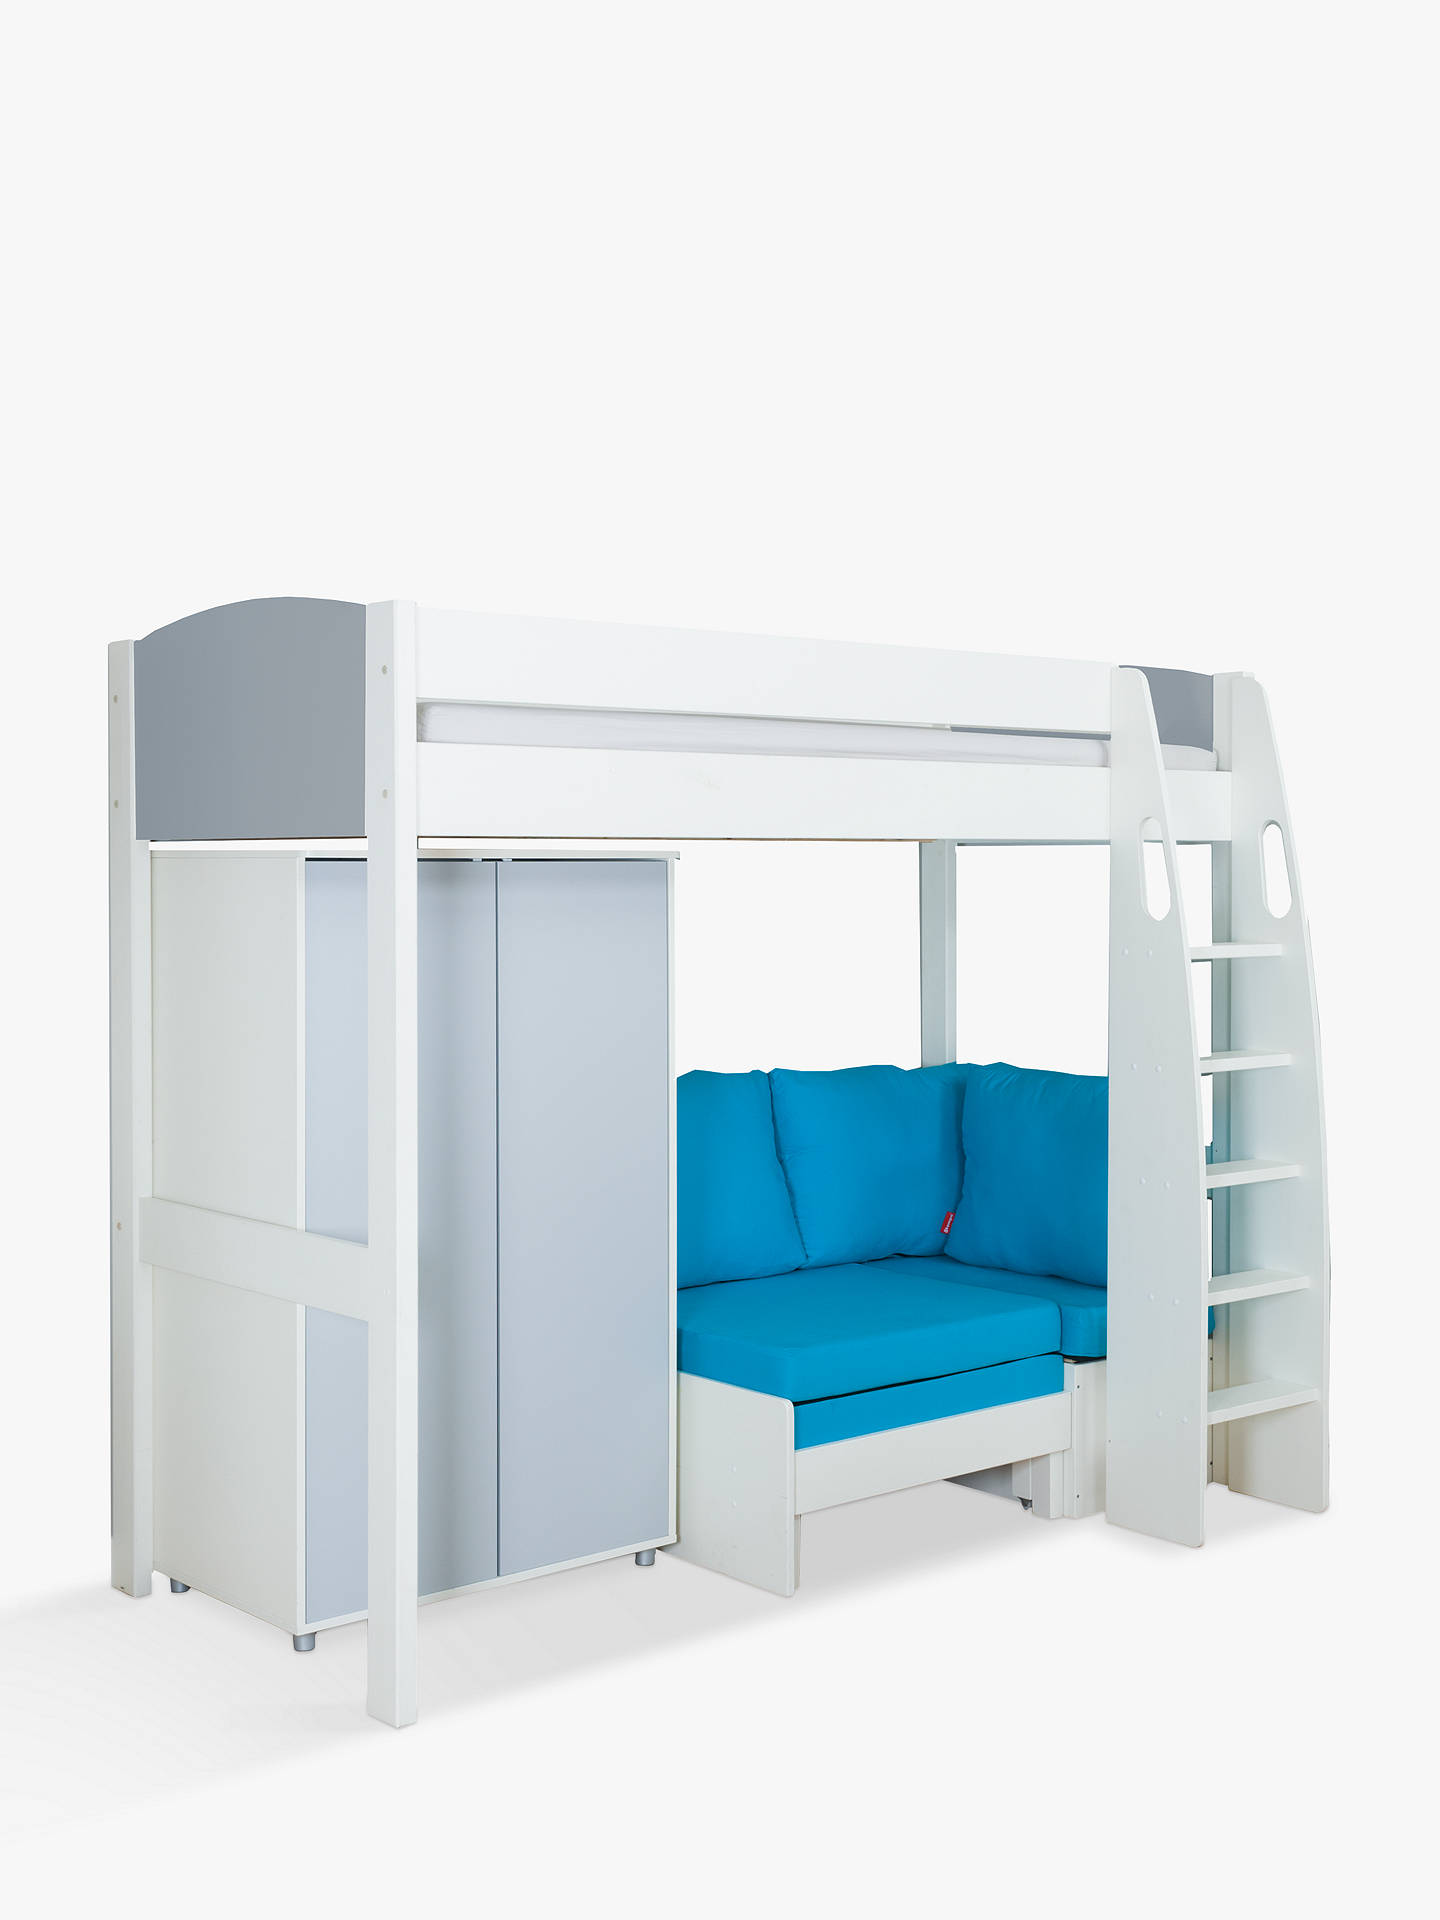 Buy Stompa Uno S Plus High-Sleeper Bed with Wardrobe and Chair Bed, Grey/Aqua Online at johnlewis.com